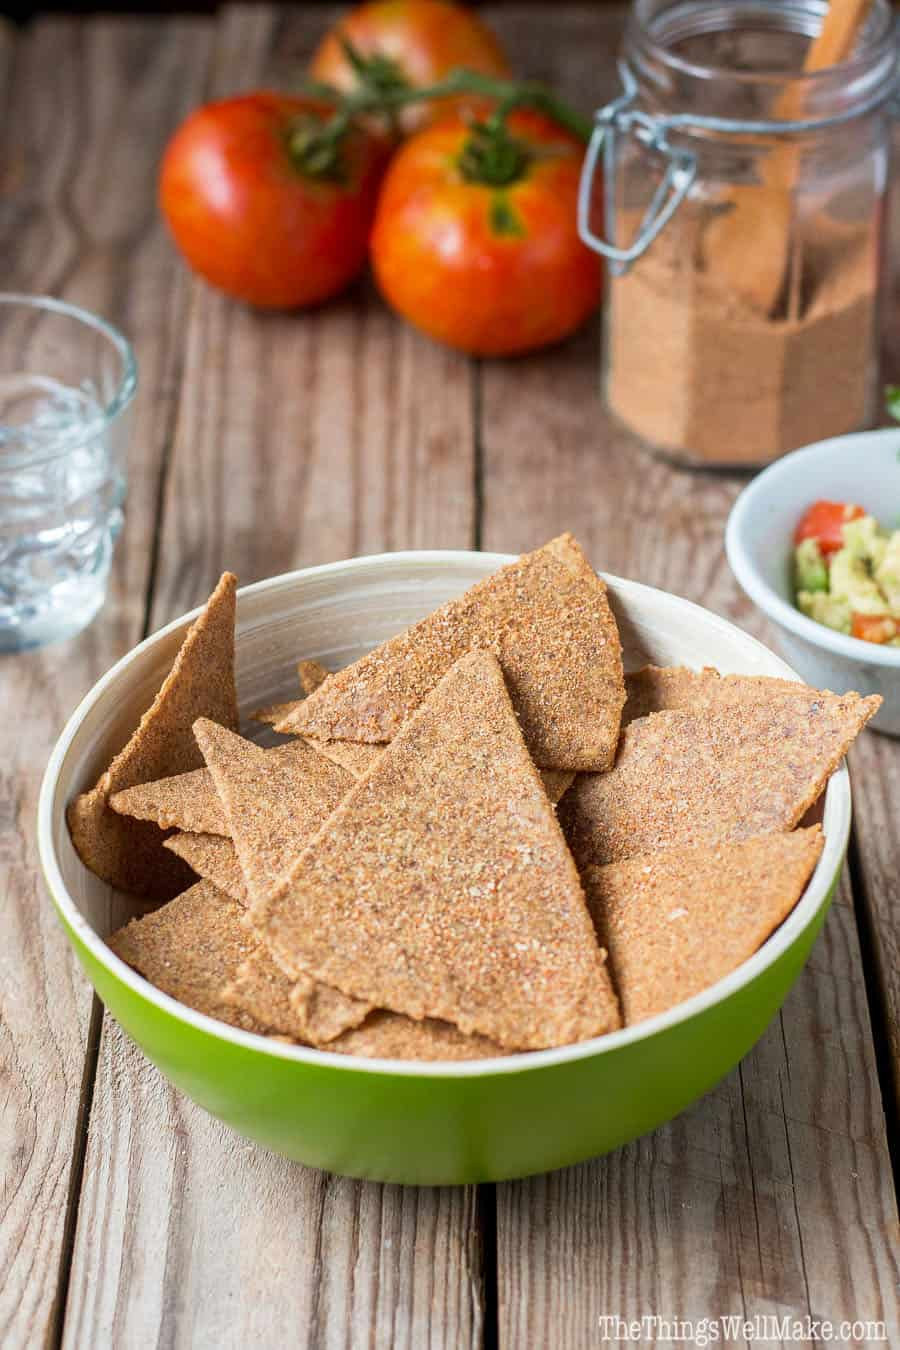 Crispy and coated with a tasty Mexican spice blend, these paleo Doritos like chips are a satisfying, healthy way to curb your junk food cravings.